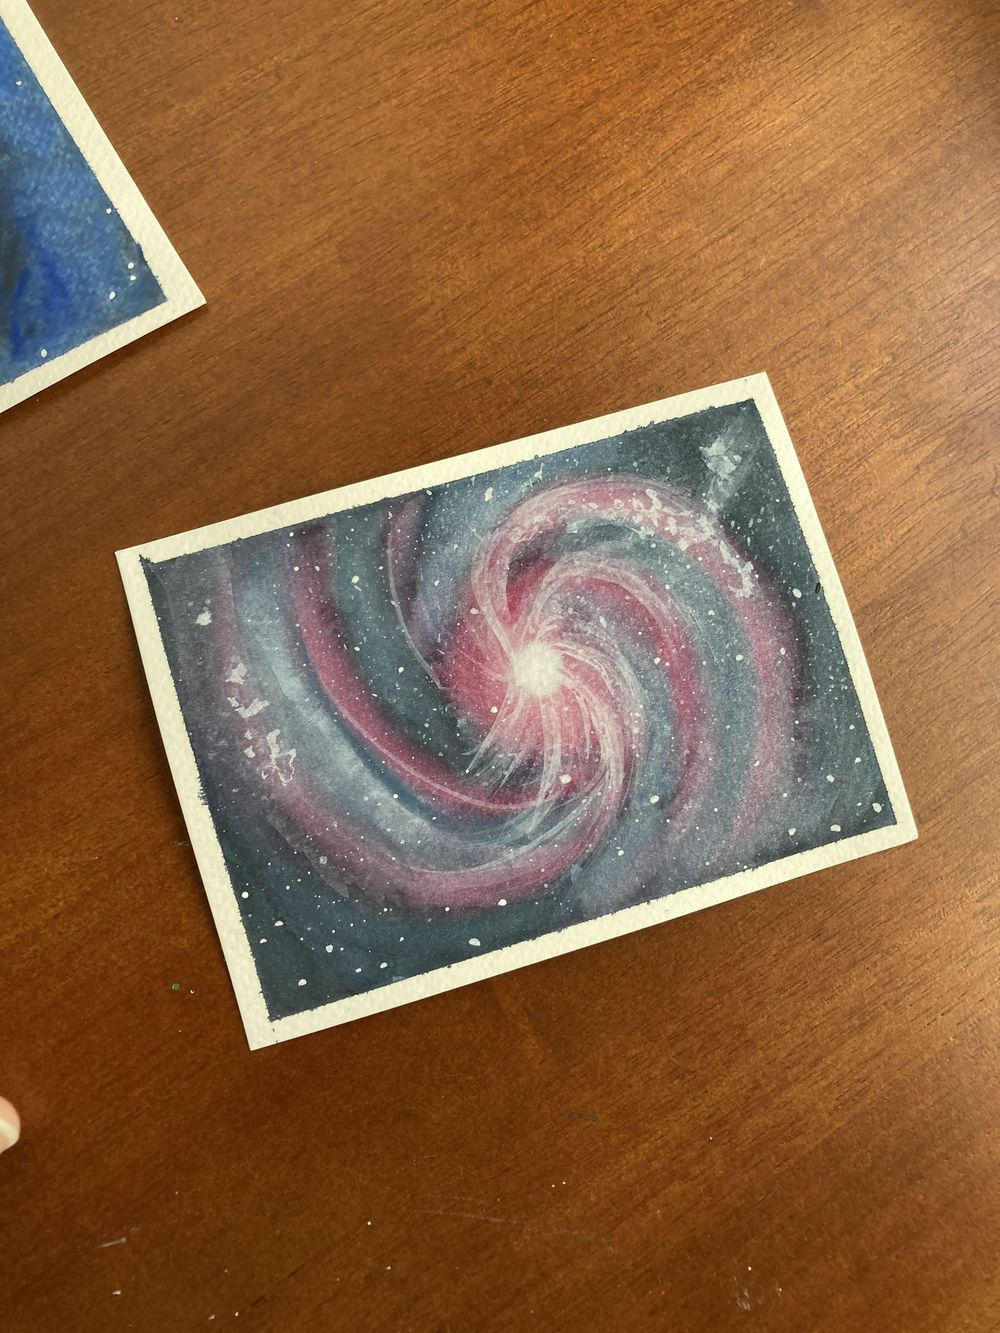 Galaxy Shapes - Vortex, Nebula, Spiral and Milky Way - image 3 - student project